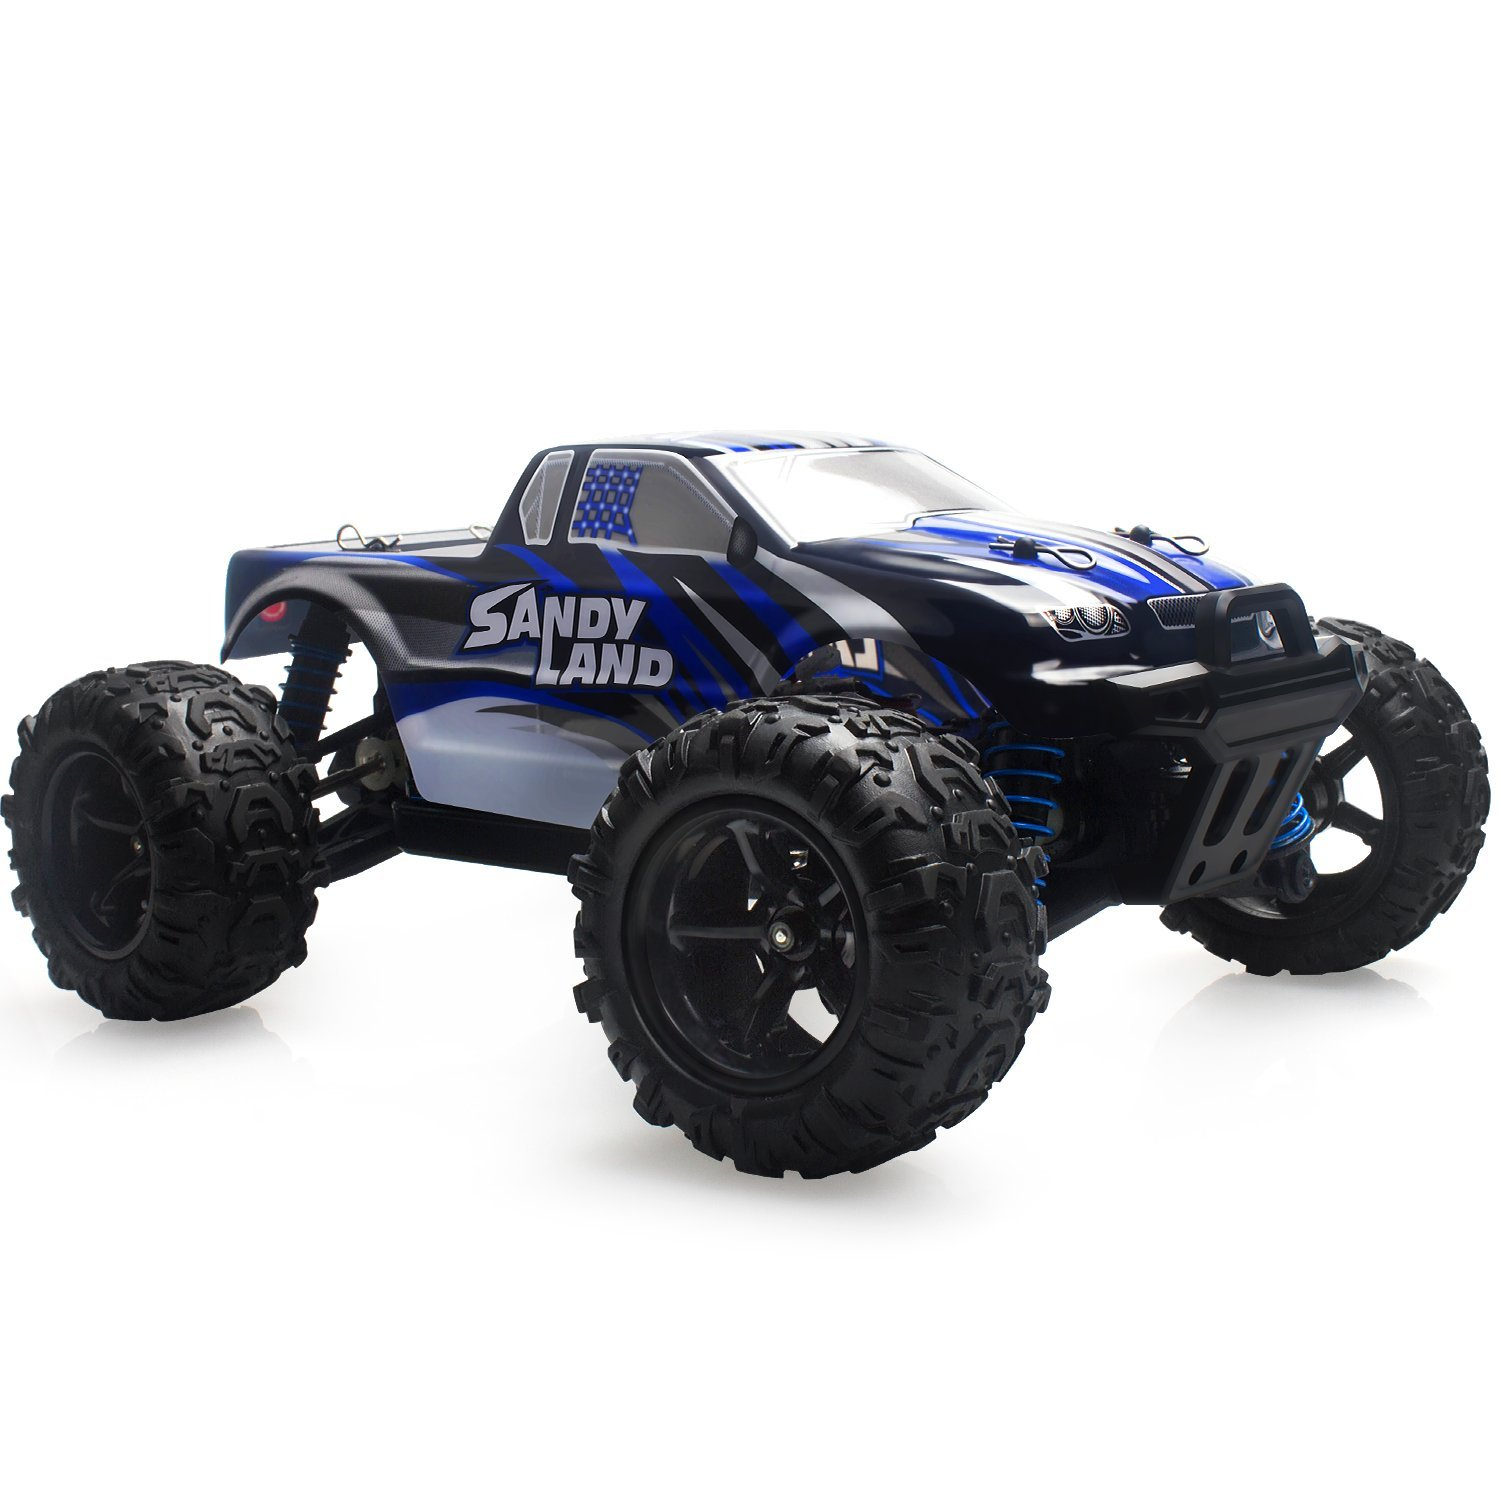 Remote Control Car Terrain Rc Cars Electric Off Road Monster Truck 1 18 Scale 2 4ghz Radio 4wd Fast 30 Mph With Rechargeable